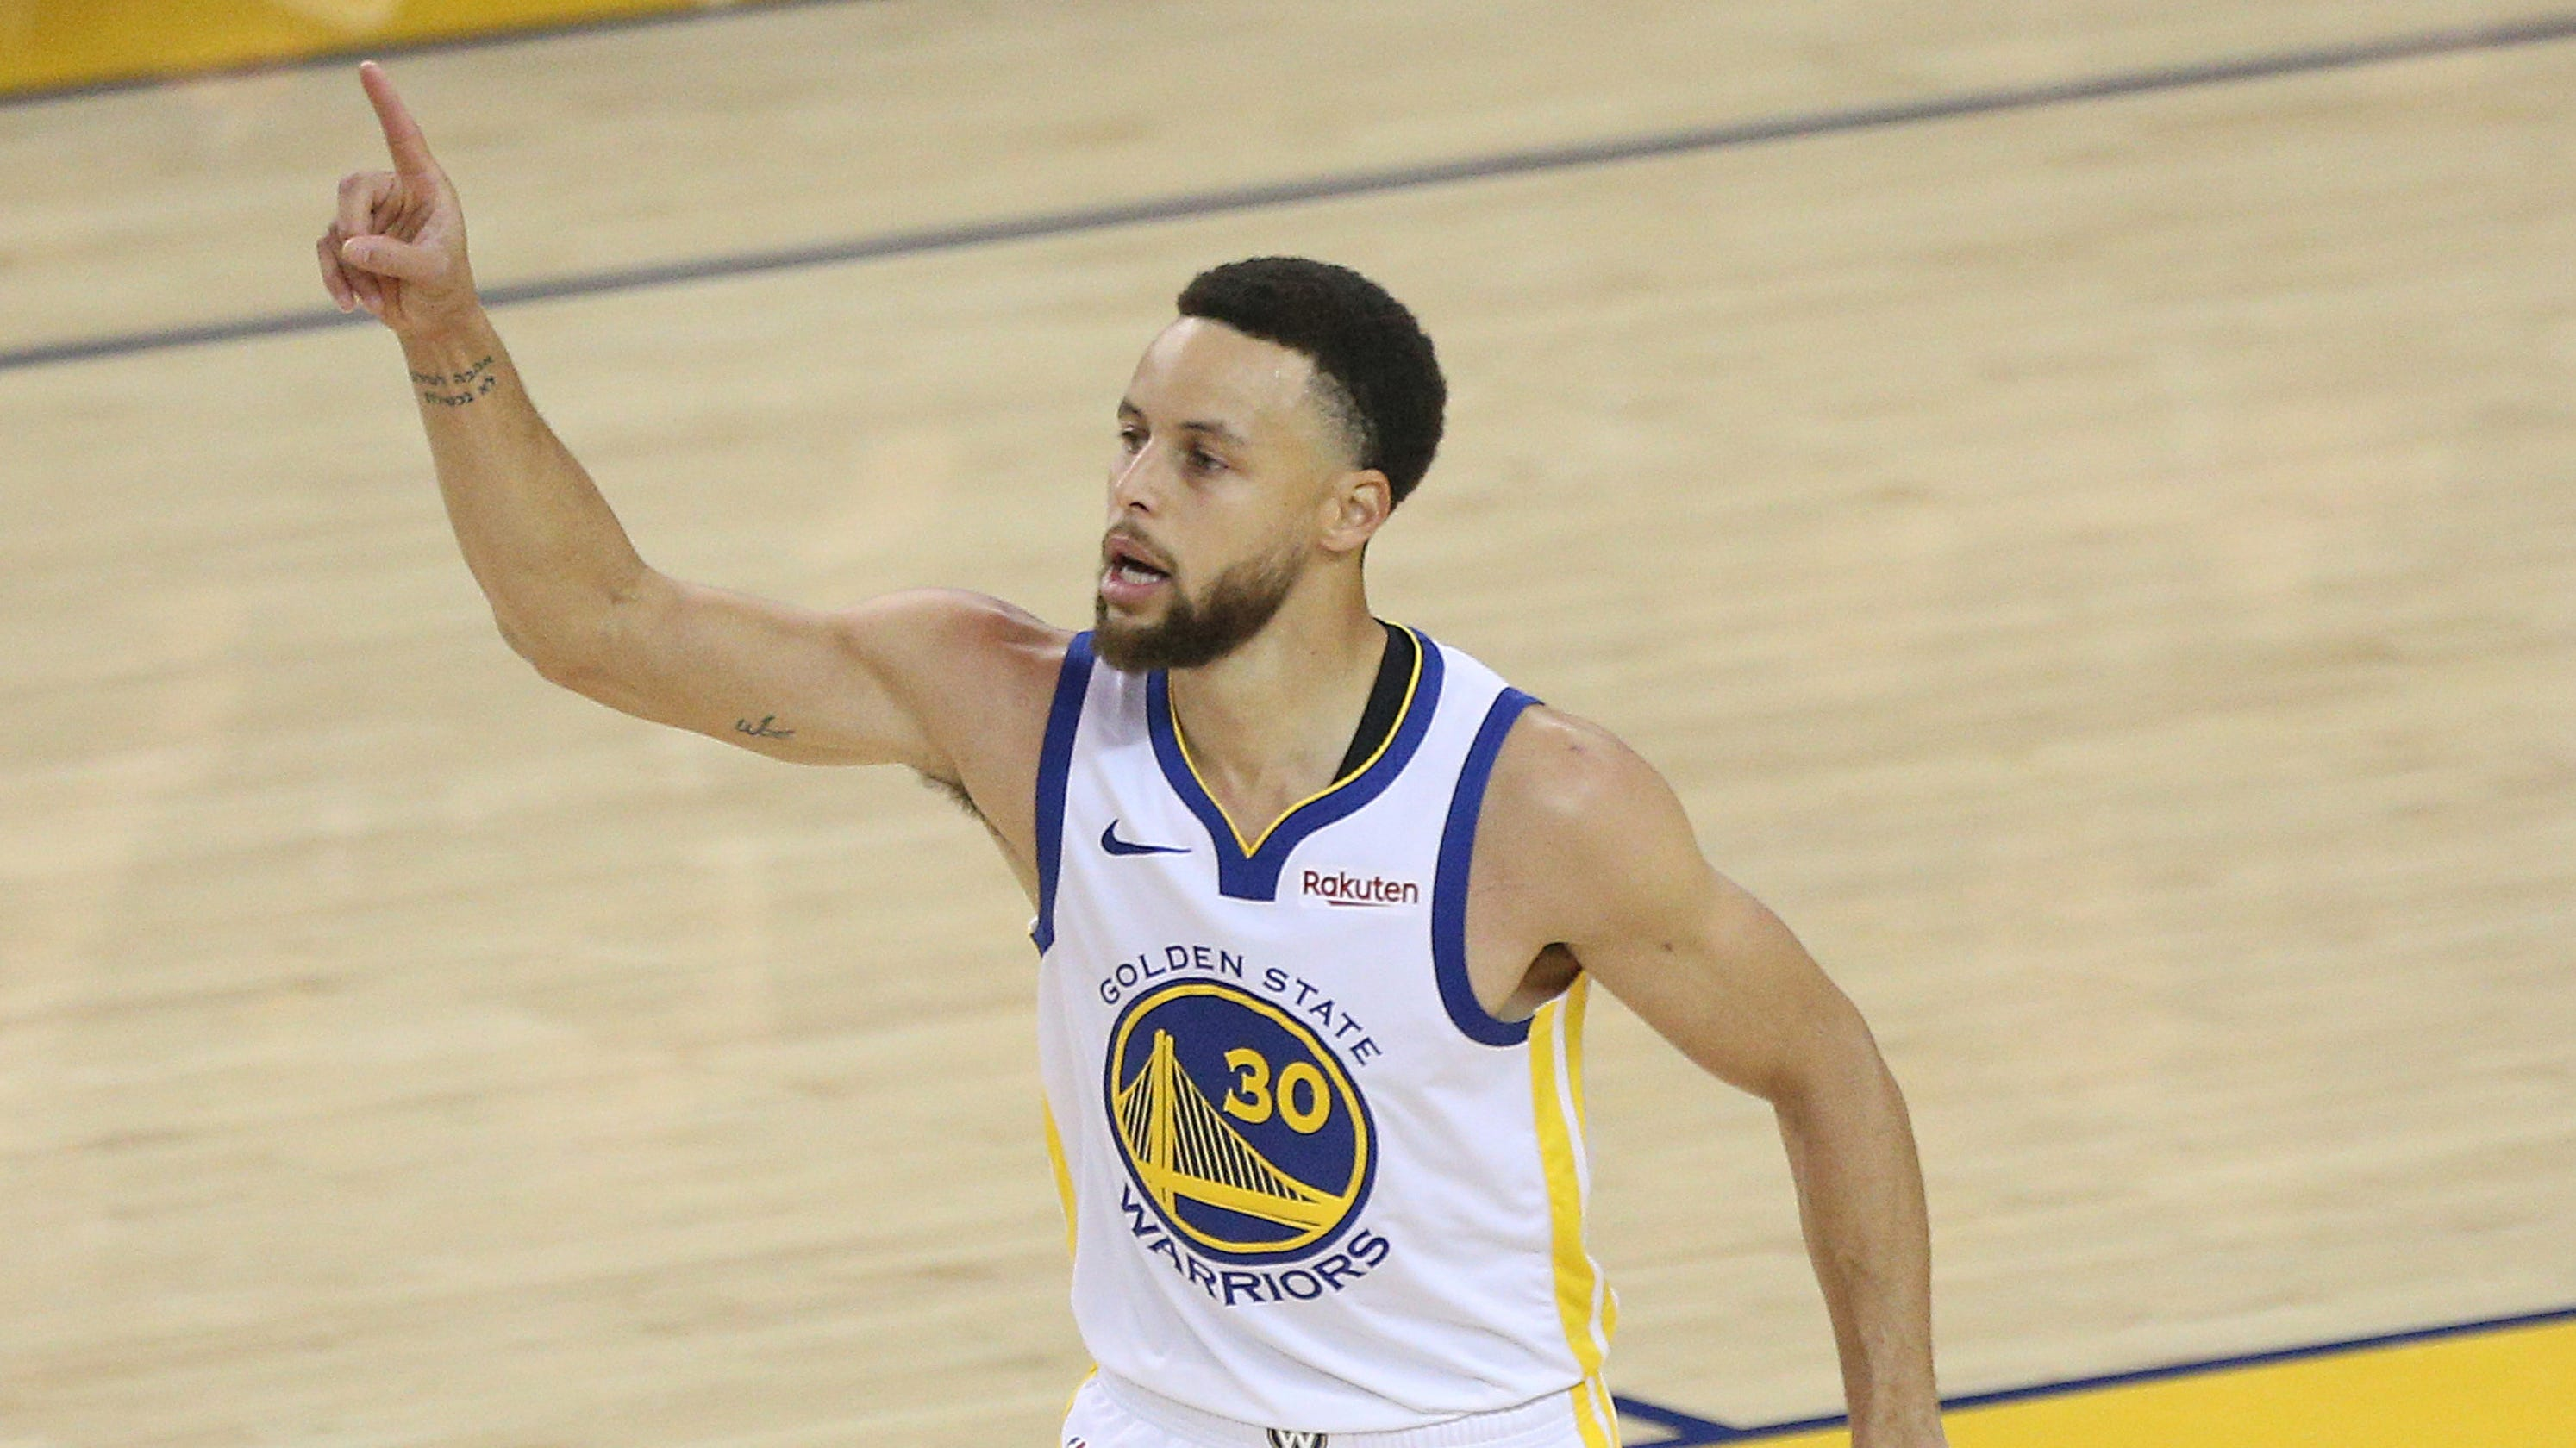 b8e1a775cfb3 NBA playoffs  Steph Curry nearly unstoppable as Warriors win Game 1